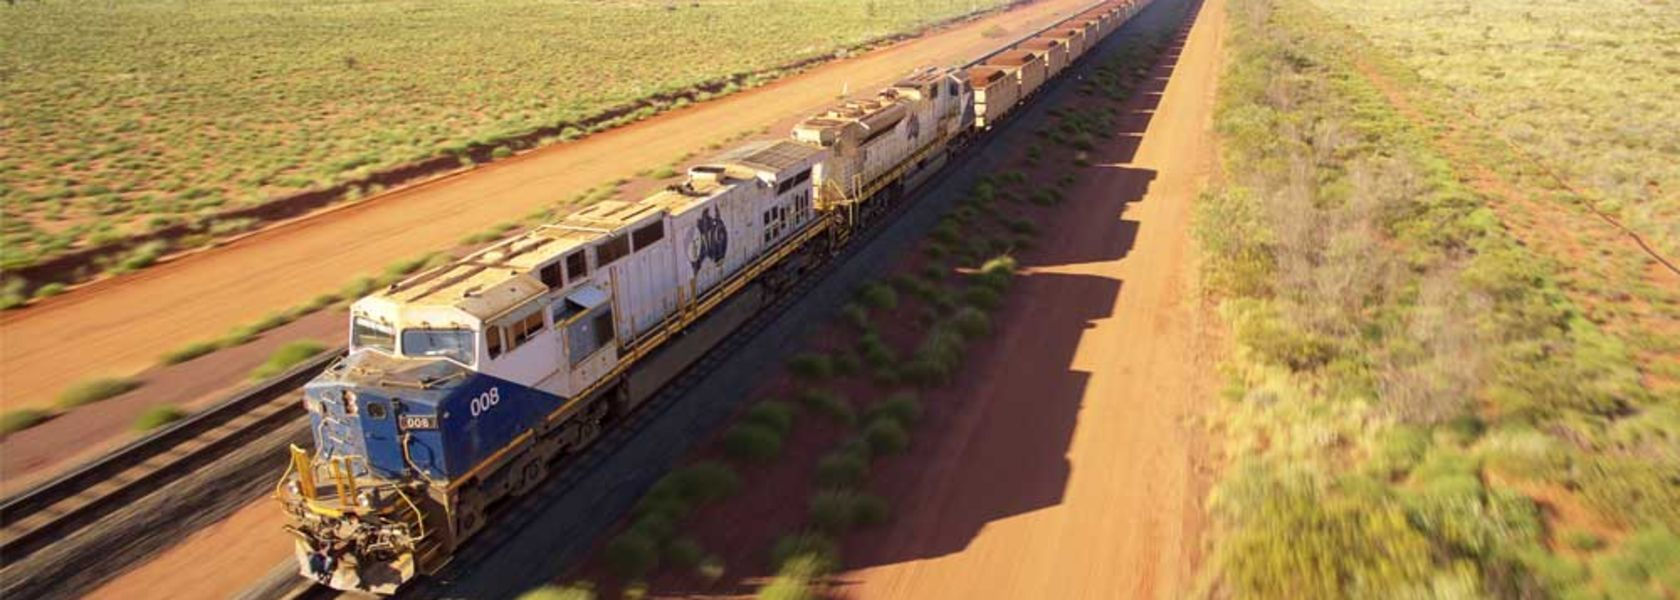 EPA okay with Eliwana railway